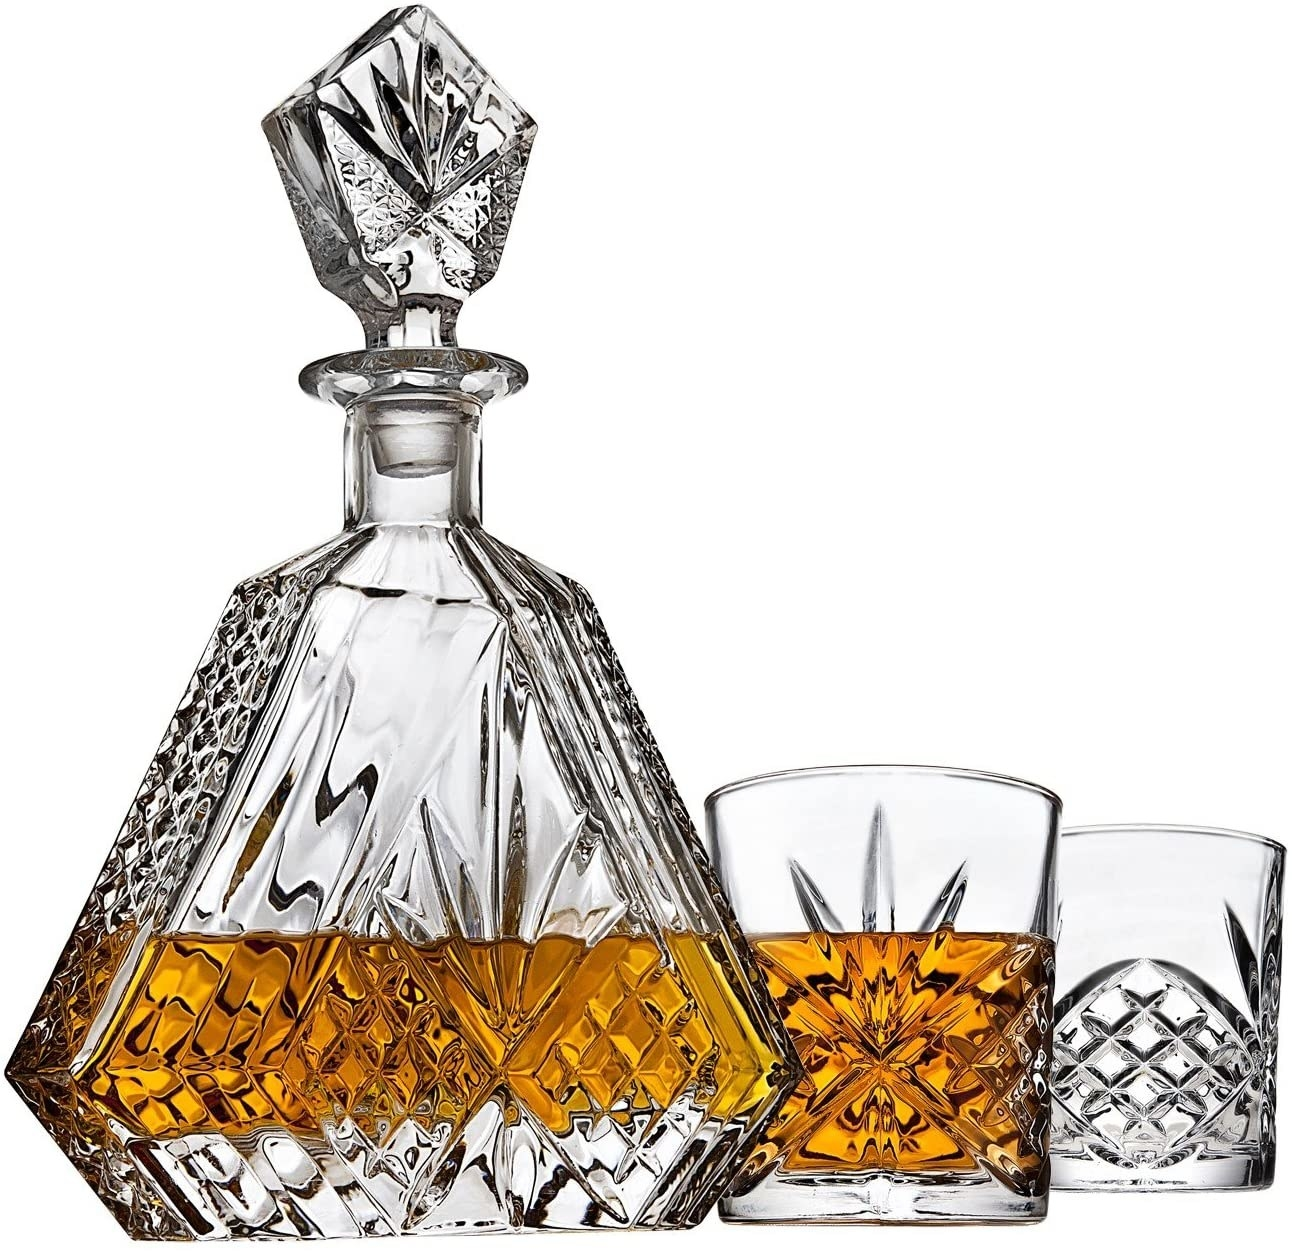 hexagon-shape decanter and matching glasses